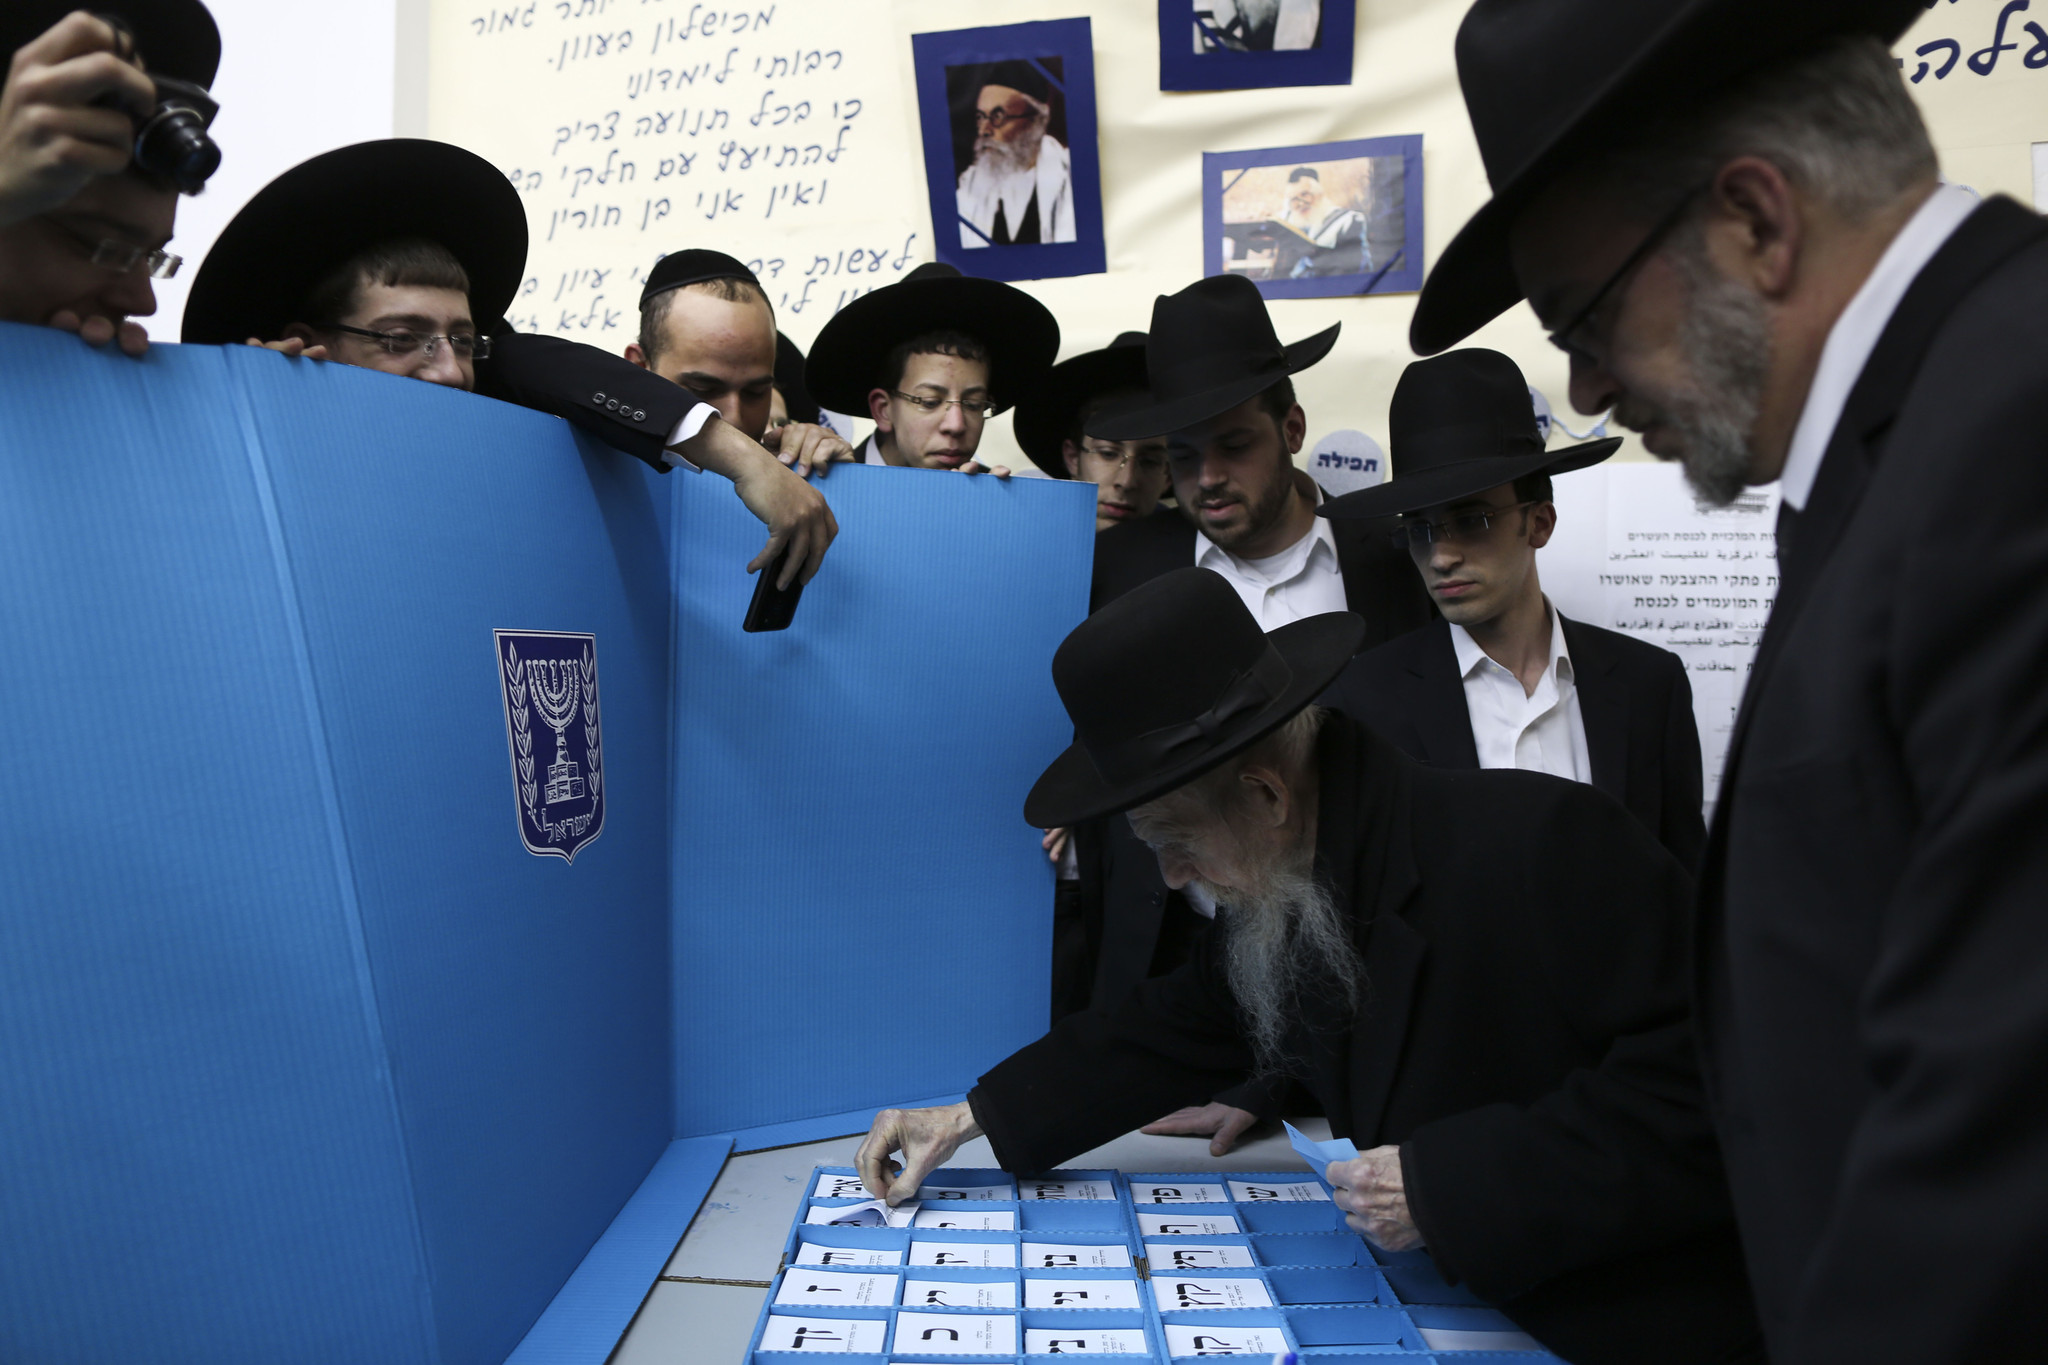 Voters in Israel flock to polls in tight race